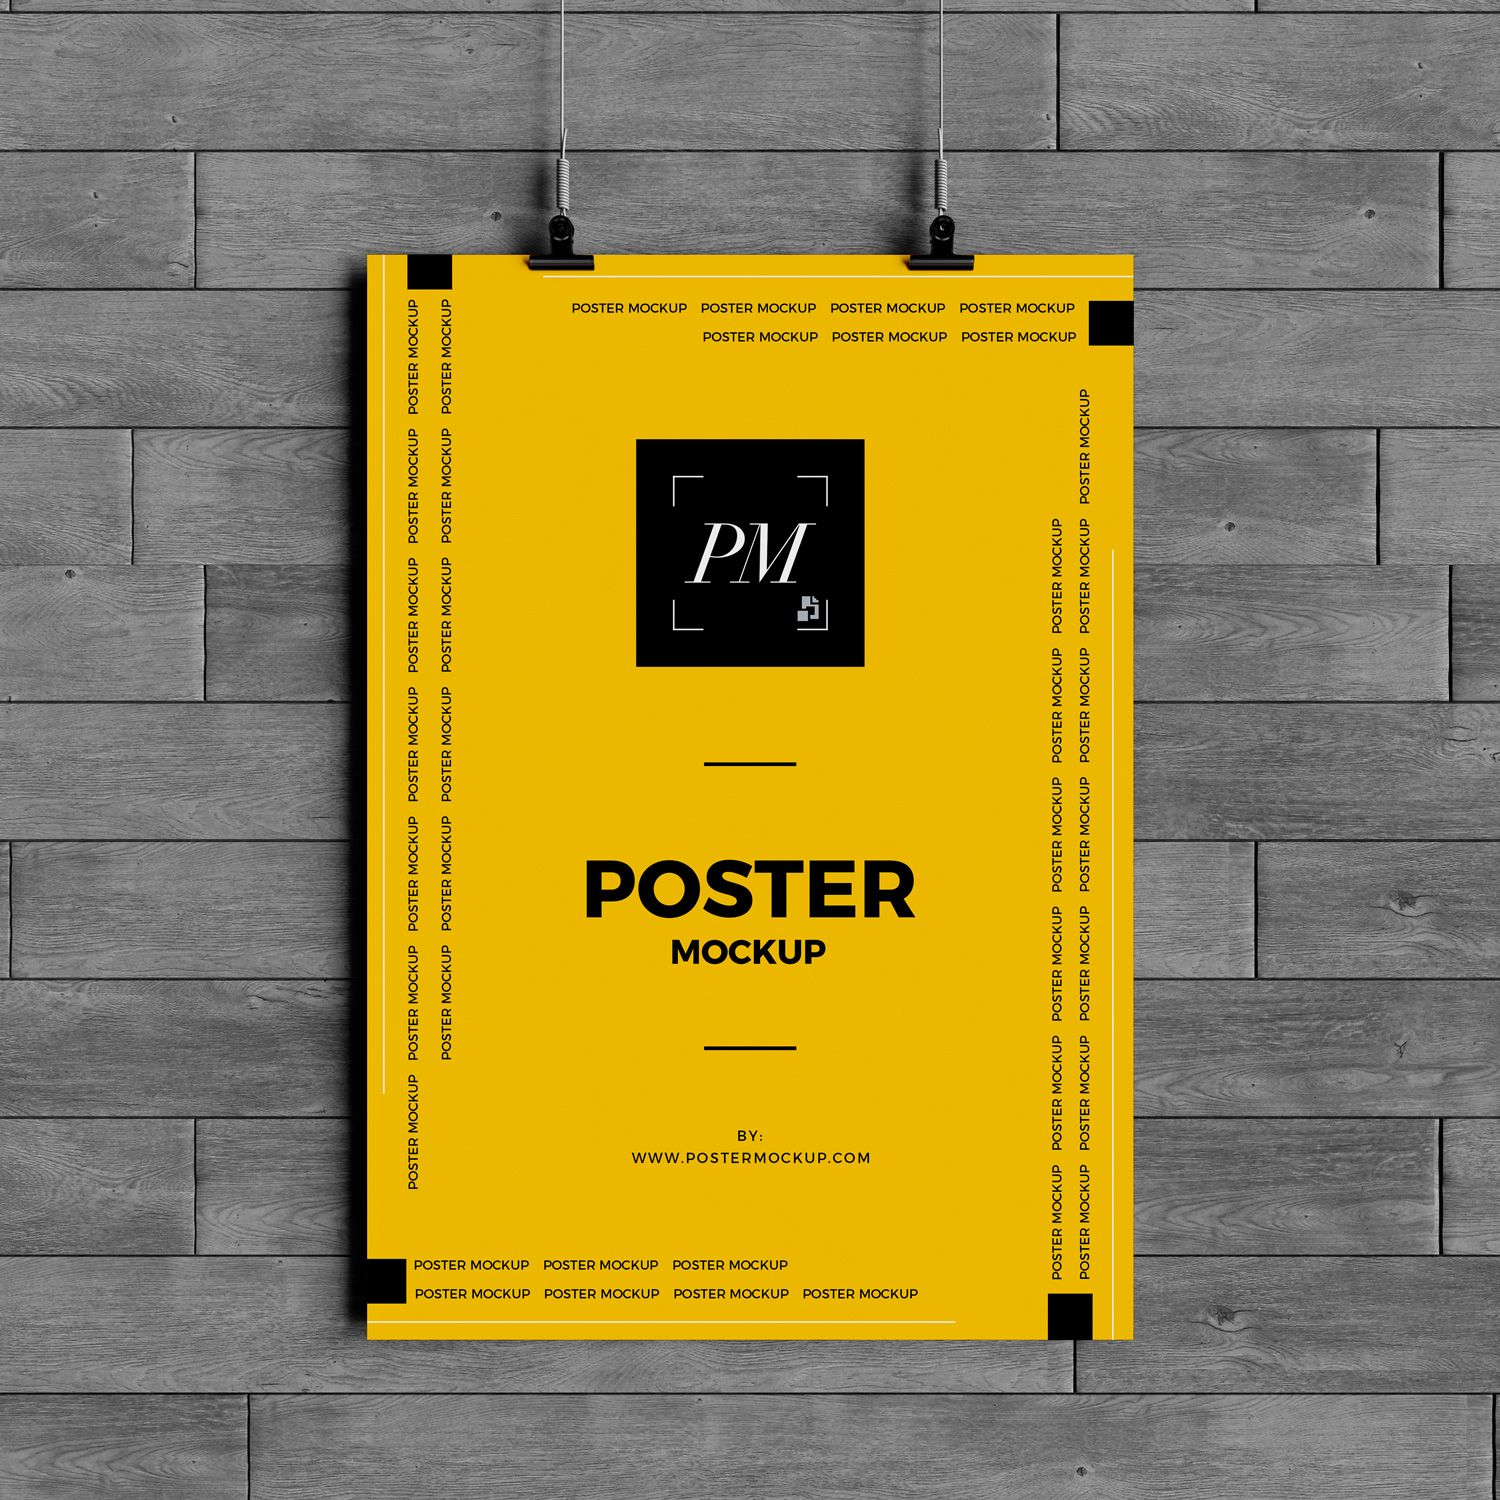 Free Hanging Over Wall Poster Mockup Psd 600 Poster Mockup Poster Mockup Psd Hanging Posters